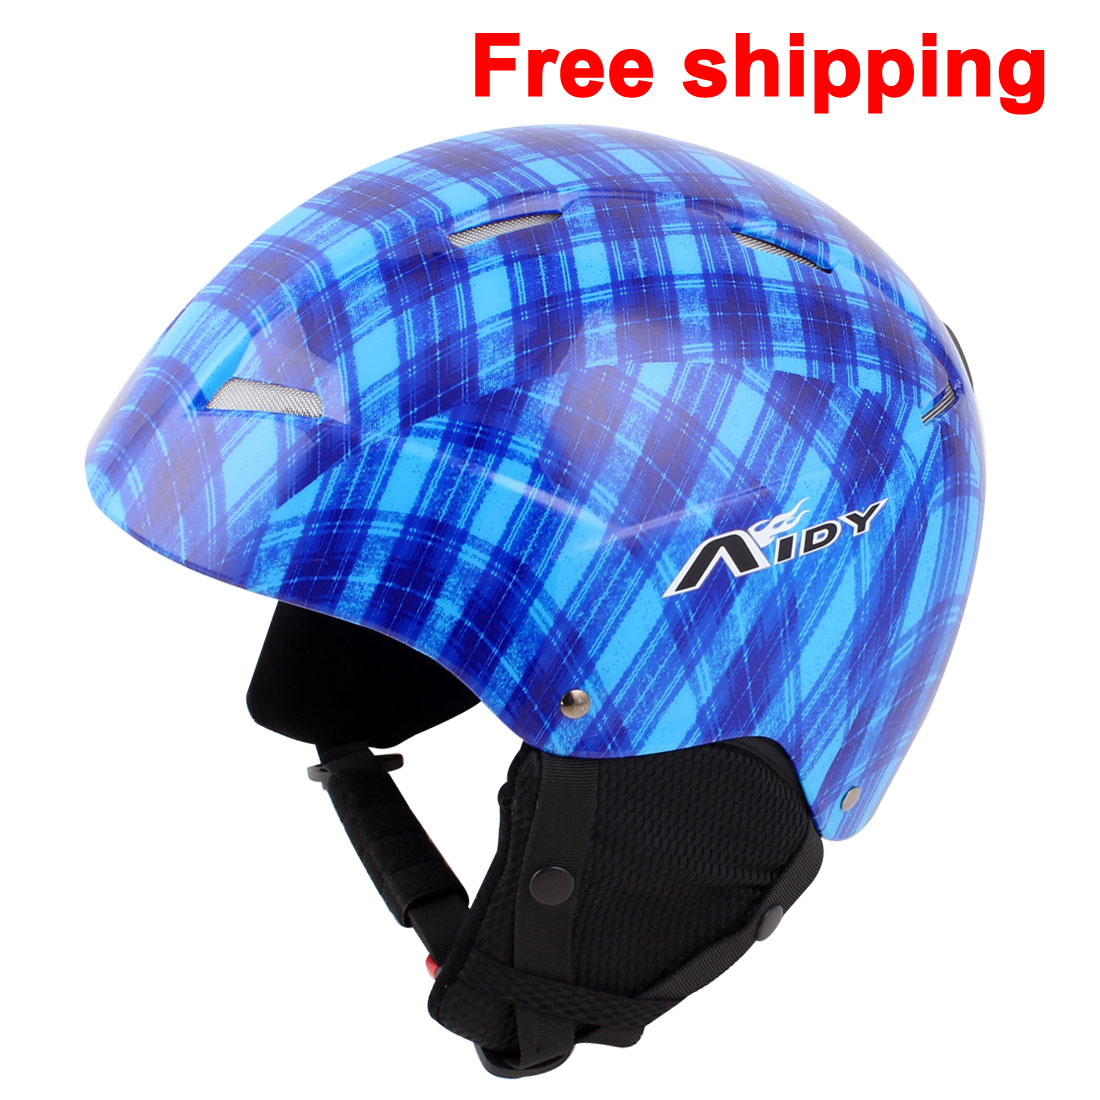 2015 New Adult Ski Skateboard Skiing Snowboard Helmet Blue Black Size L by